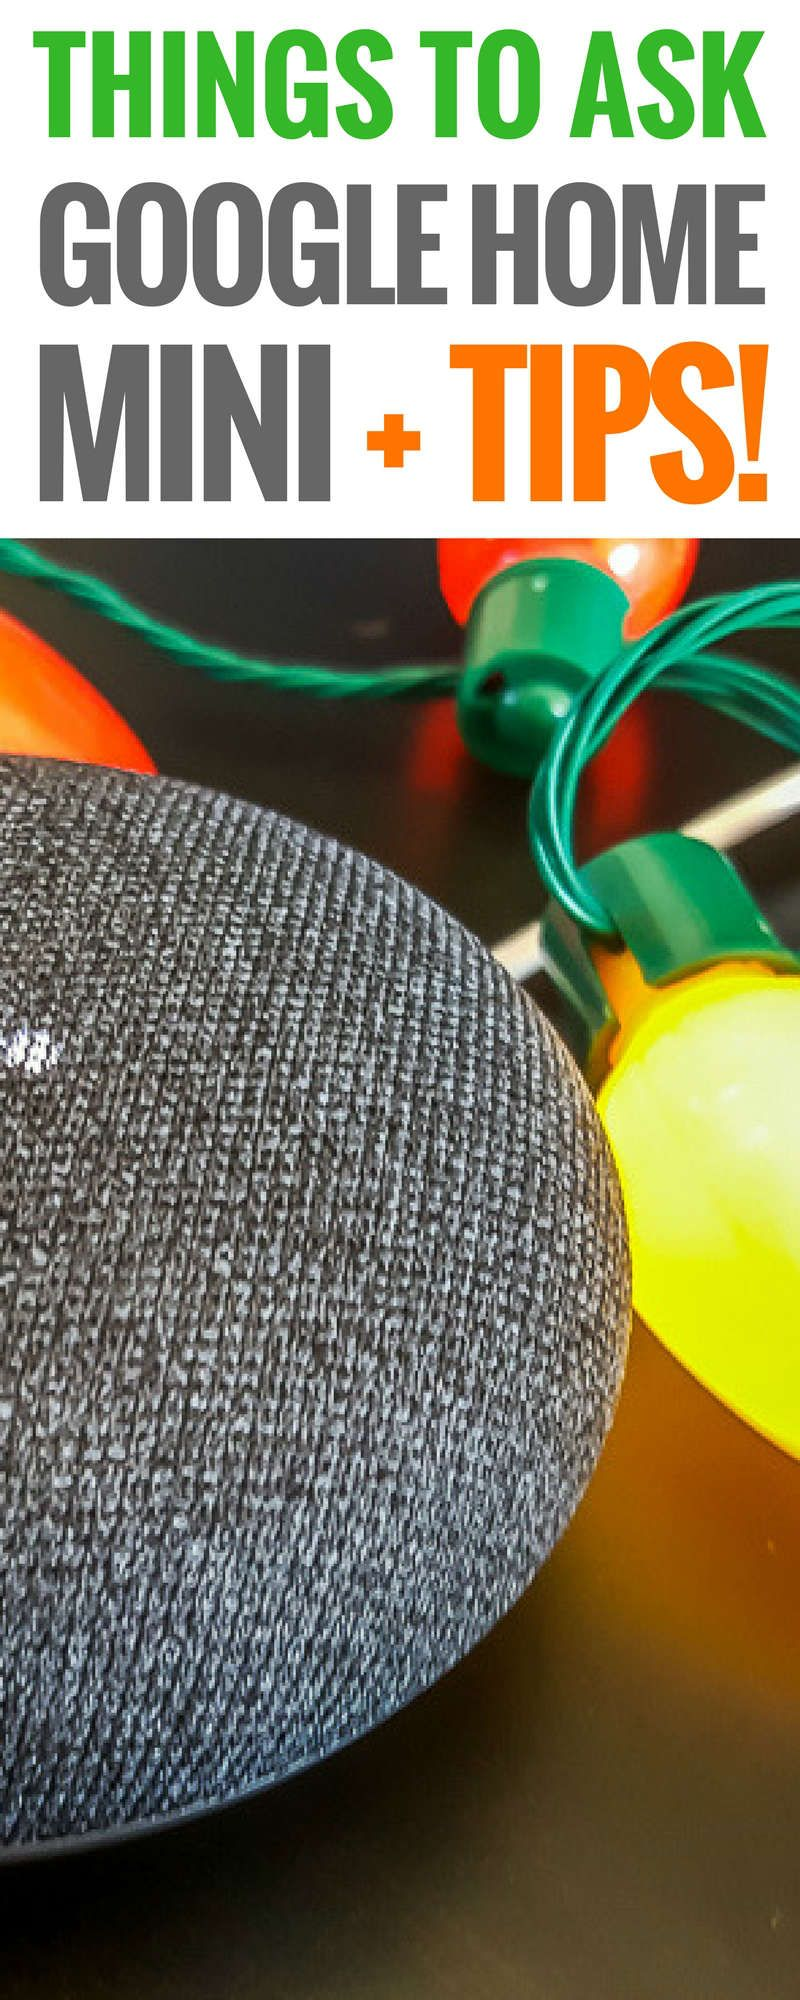 0407b508b6c301f39304c8709a908e7b - How To Get Google Home To Play Your Music